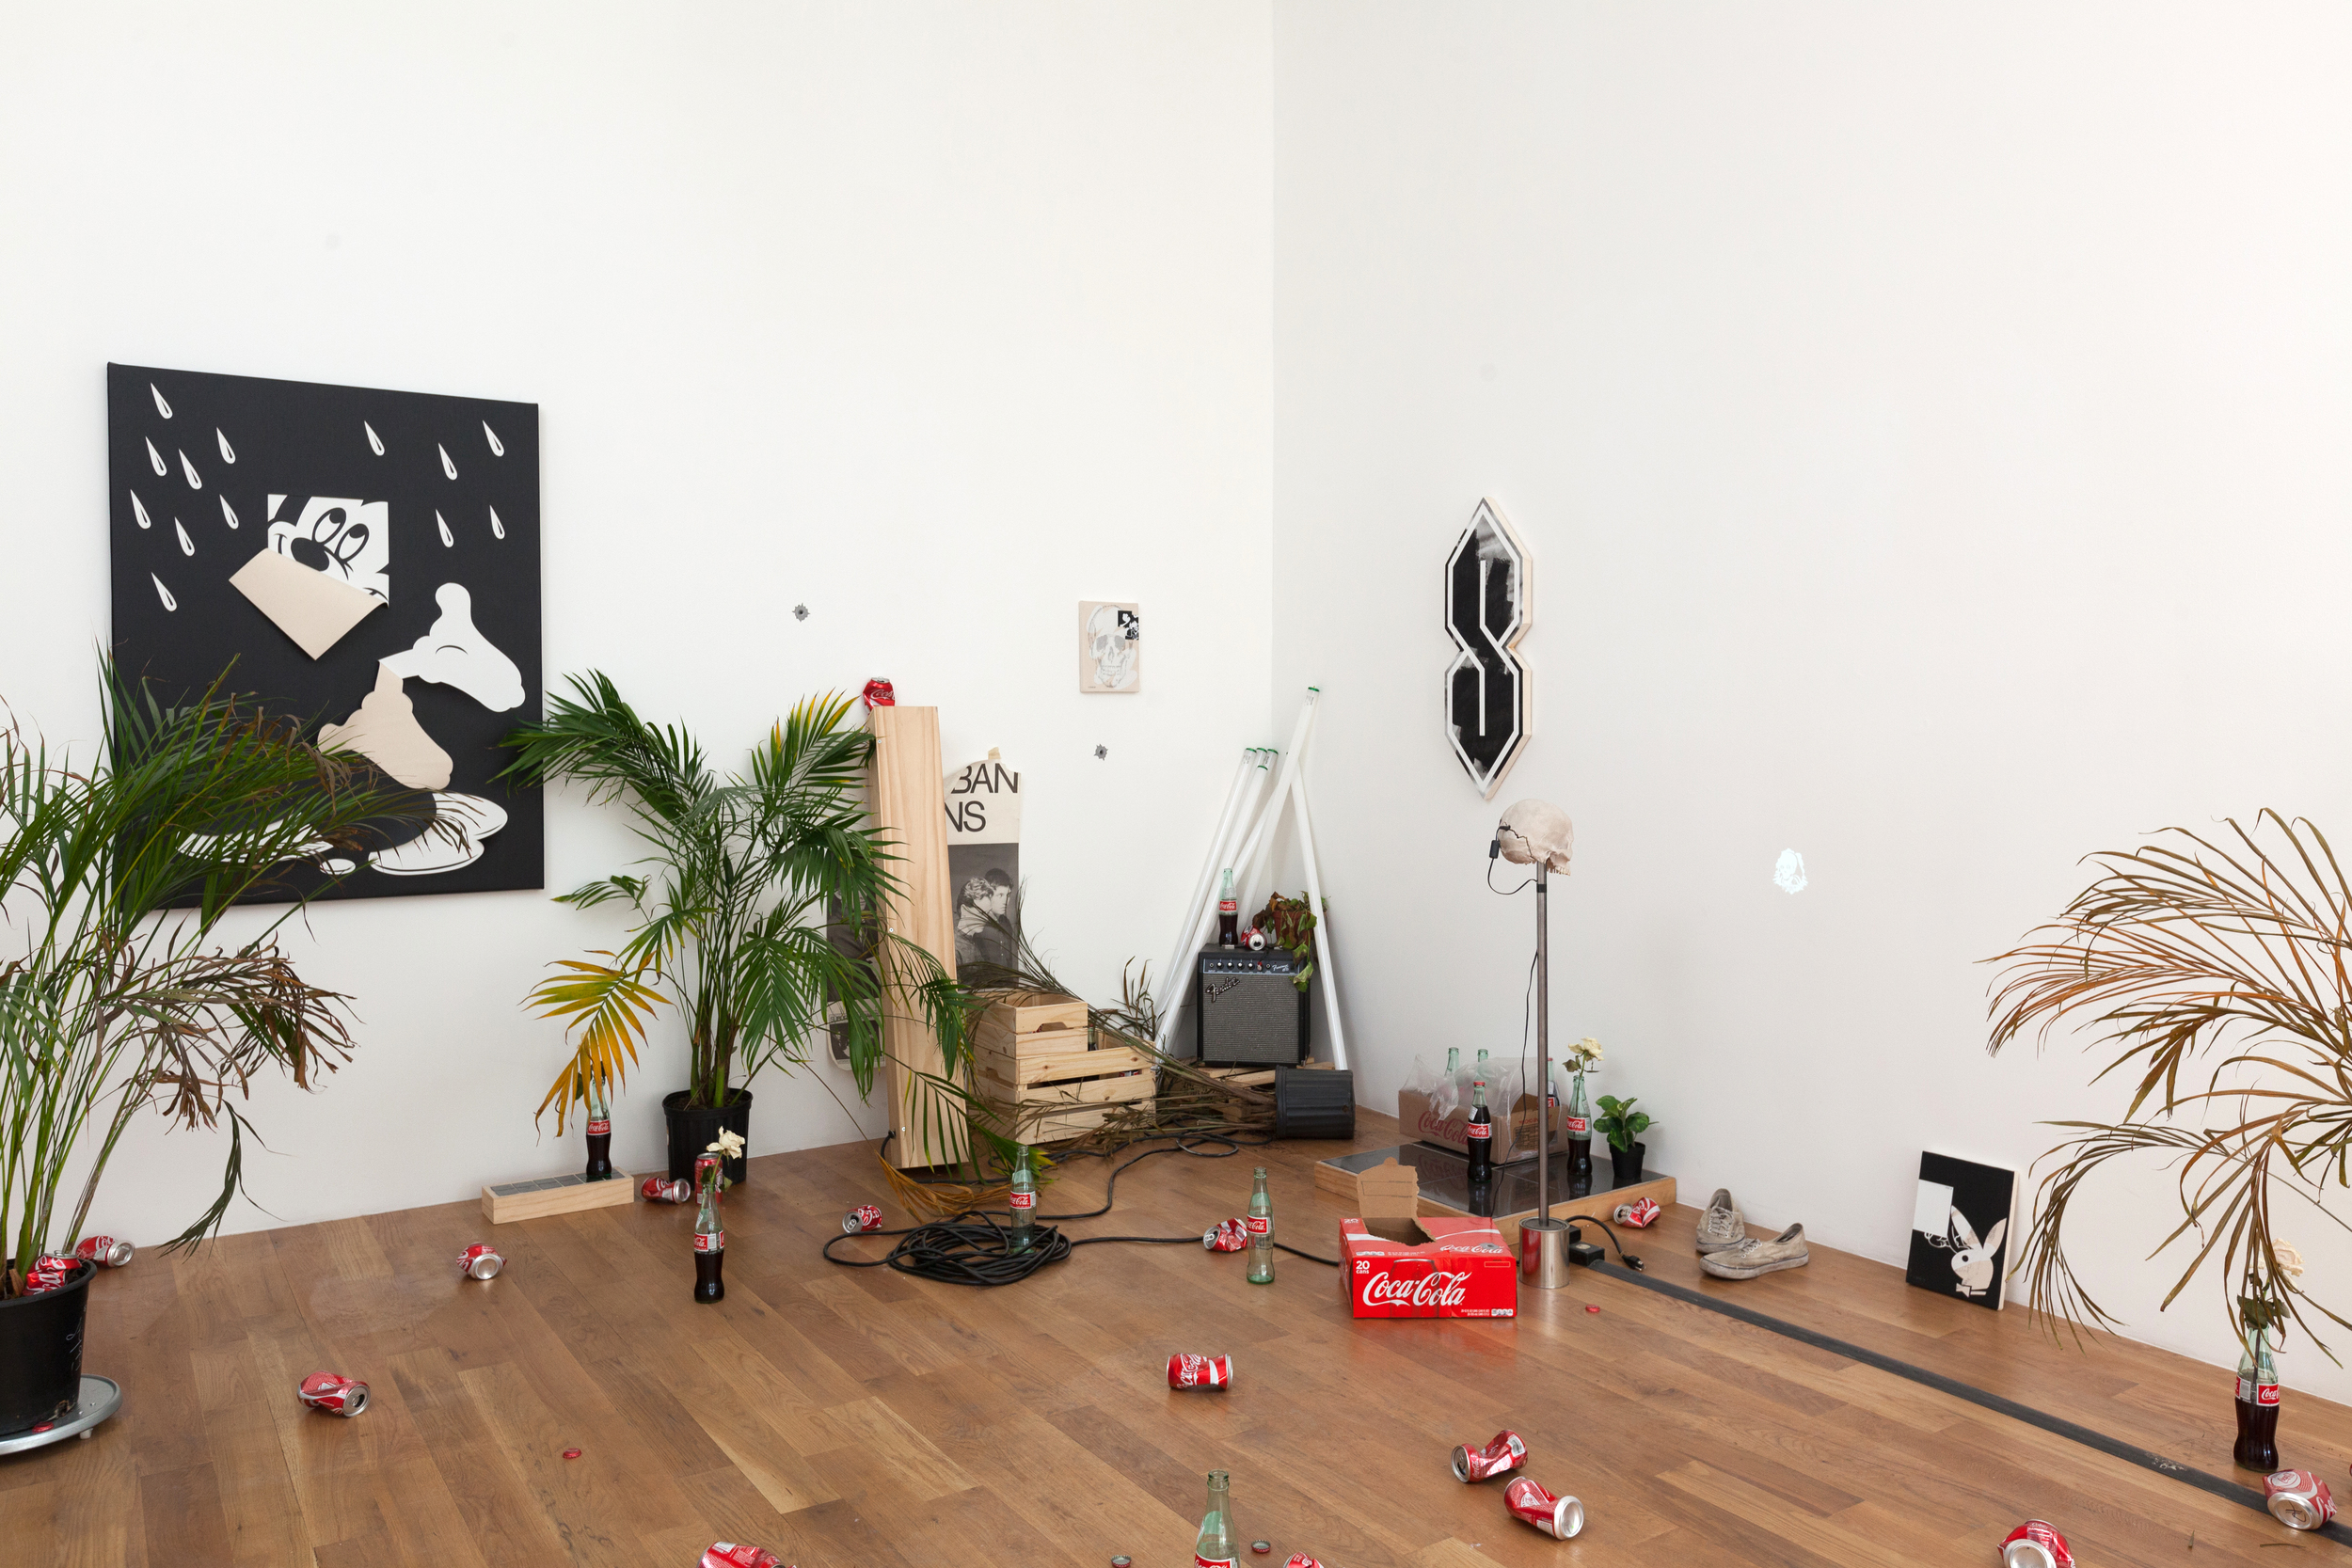 Zach Reini at Gildar Gallery